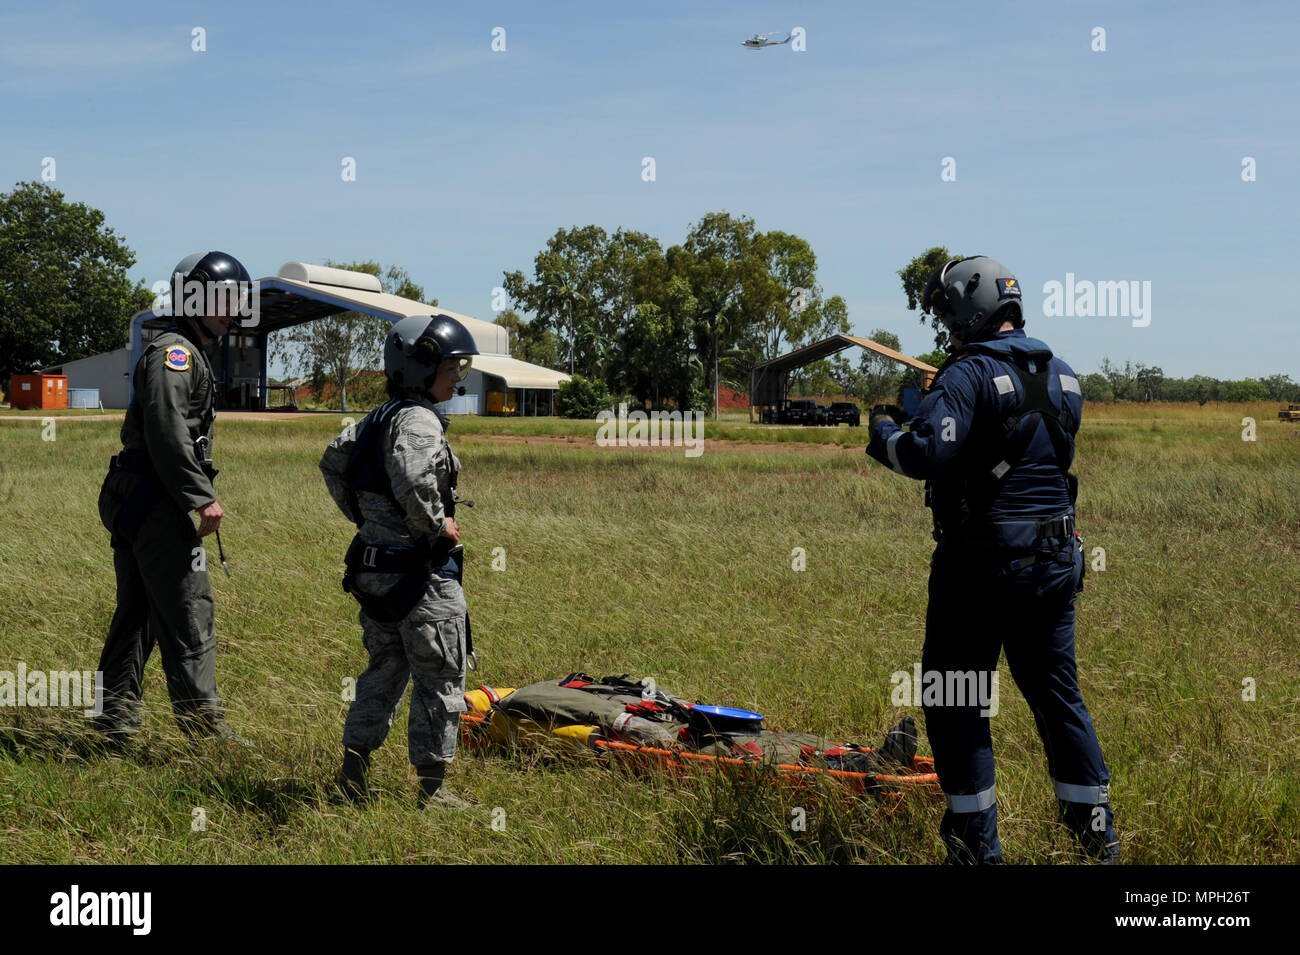 Rescue Crewman Kurt Pride (right), Royal Australian Air Force Base Tindal helicopter unit member, U.S. Air Force Capt. Paul Ward, 90th Fighter Squadron Flight Doctor, and Tech. Sgt. Layla Dispense, 90th FS Independent Duty Medical Technician, prepare a dummy for transport on a stretcher during helicopter rescue training at RAAF Base Tindal, Feb. 28, 2017. Ward and Dispense are deployed to Australia as part of the Enhanced Air Cooperation, a joint training and exercise initiative under the Force Posture Agreement between the U.S. and Australian governments. (U.S. Air Force photo by Staff Sgt. A - Stock Image